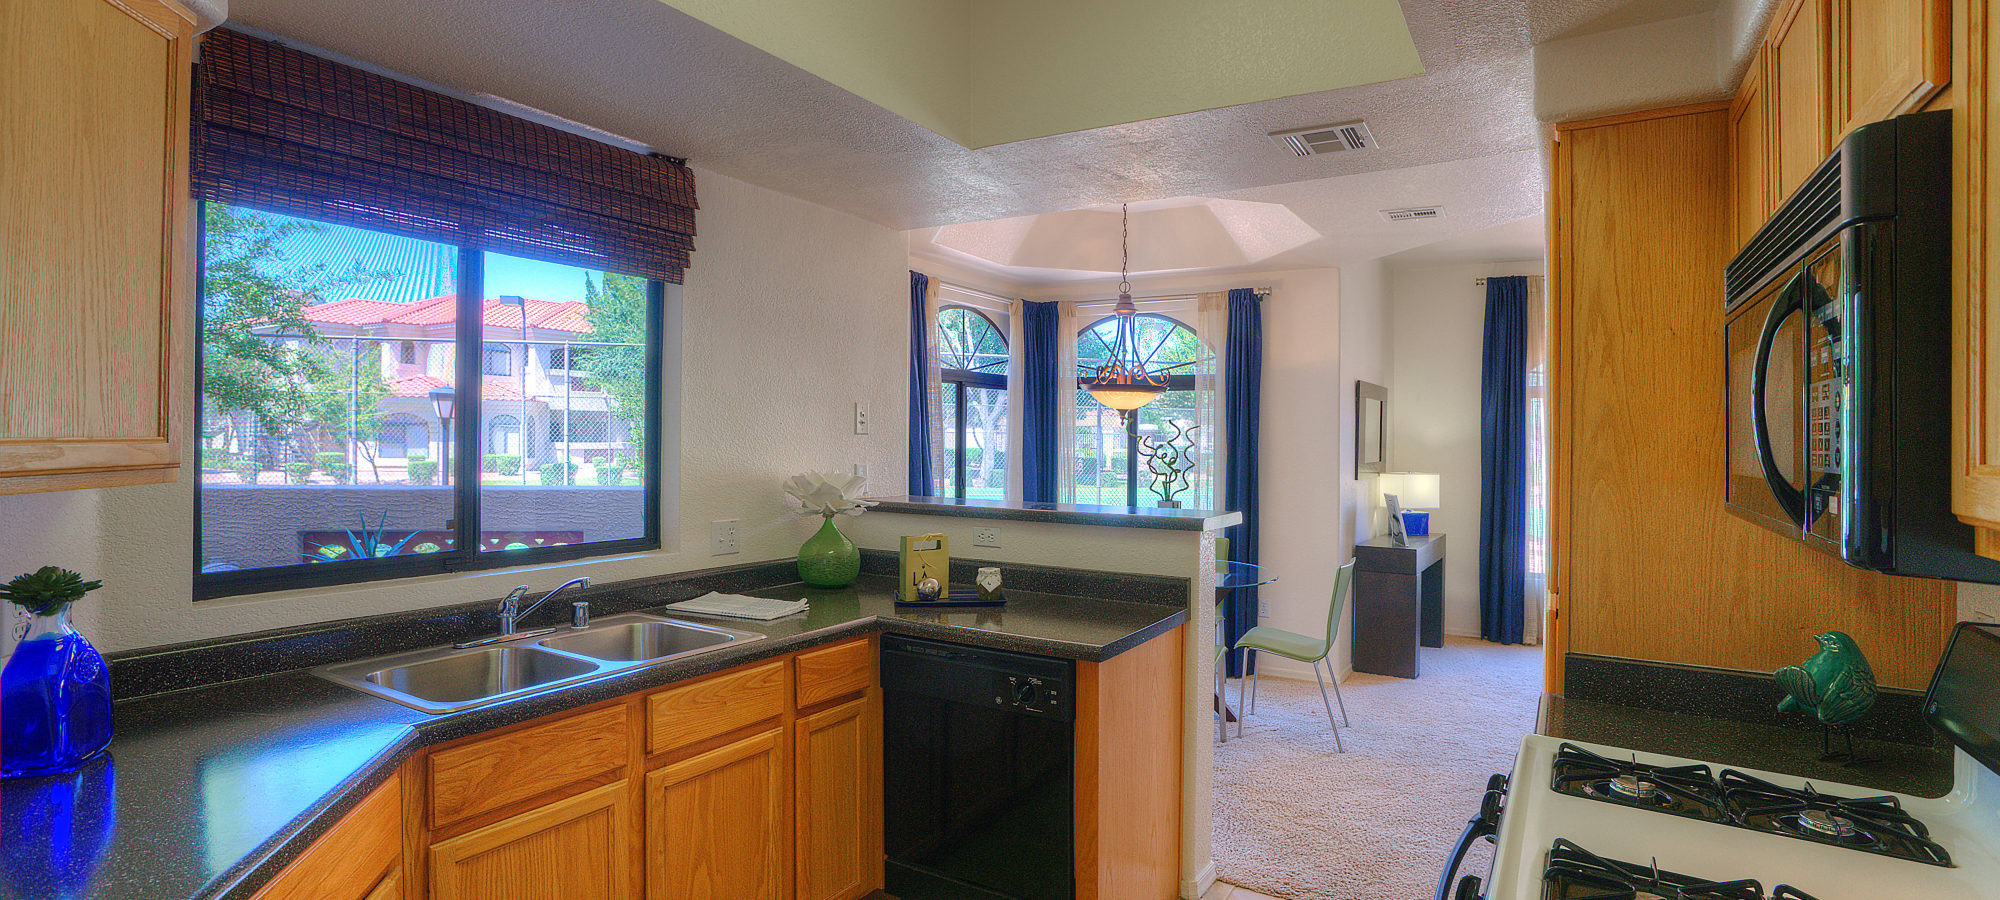 Kitchen with a window at San Cervantes in Chandler, Arizona